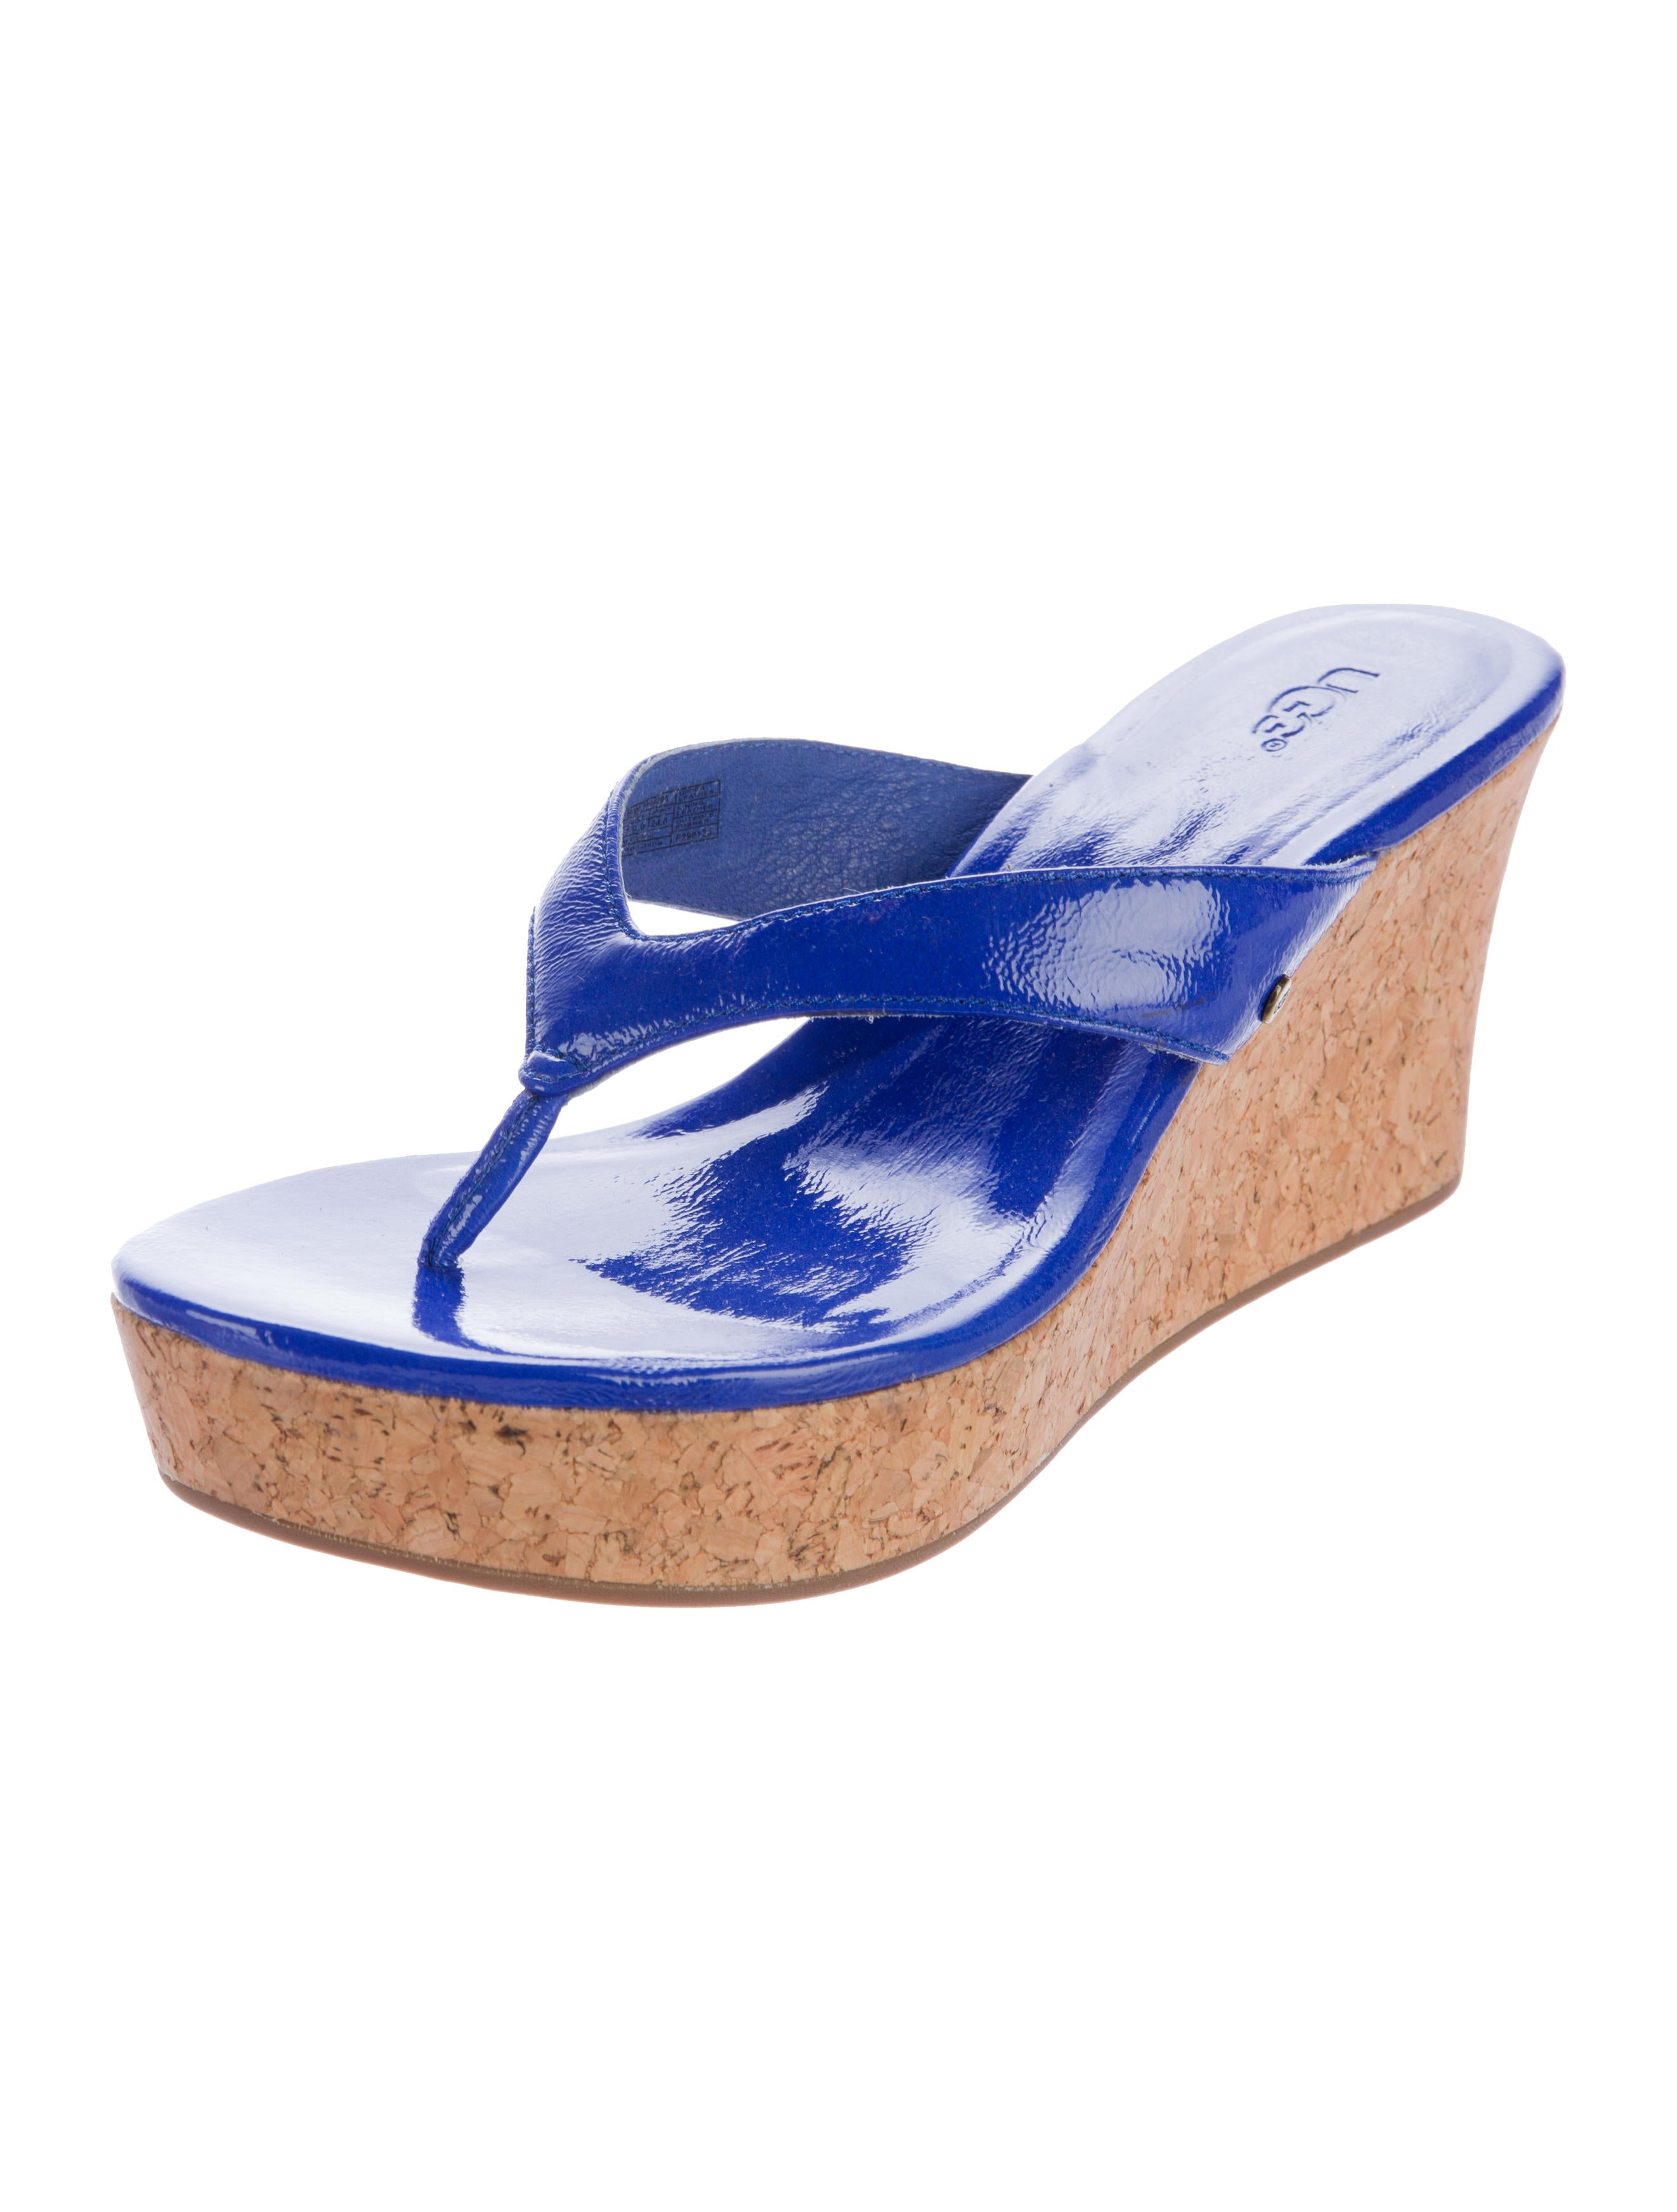 ugg australia patent leather wedges shoes